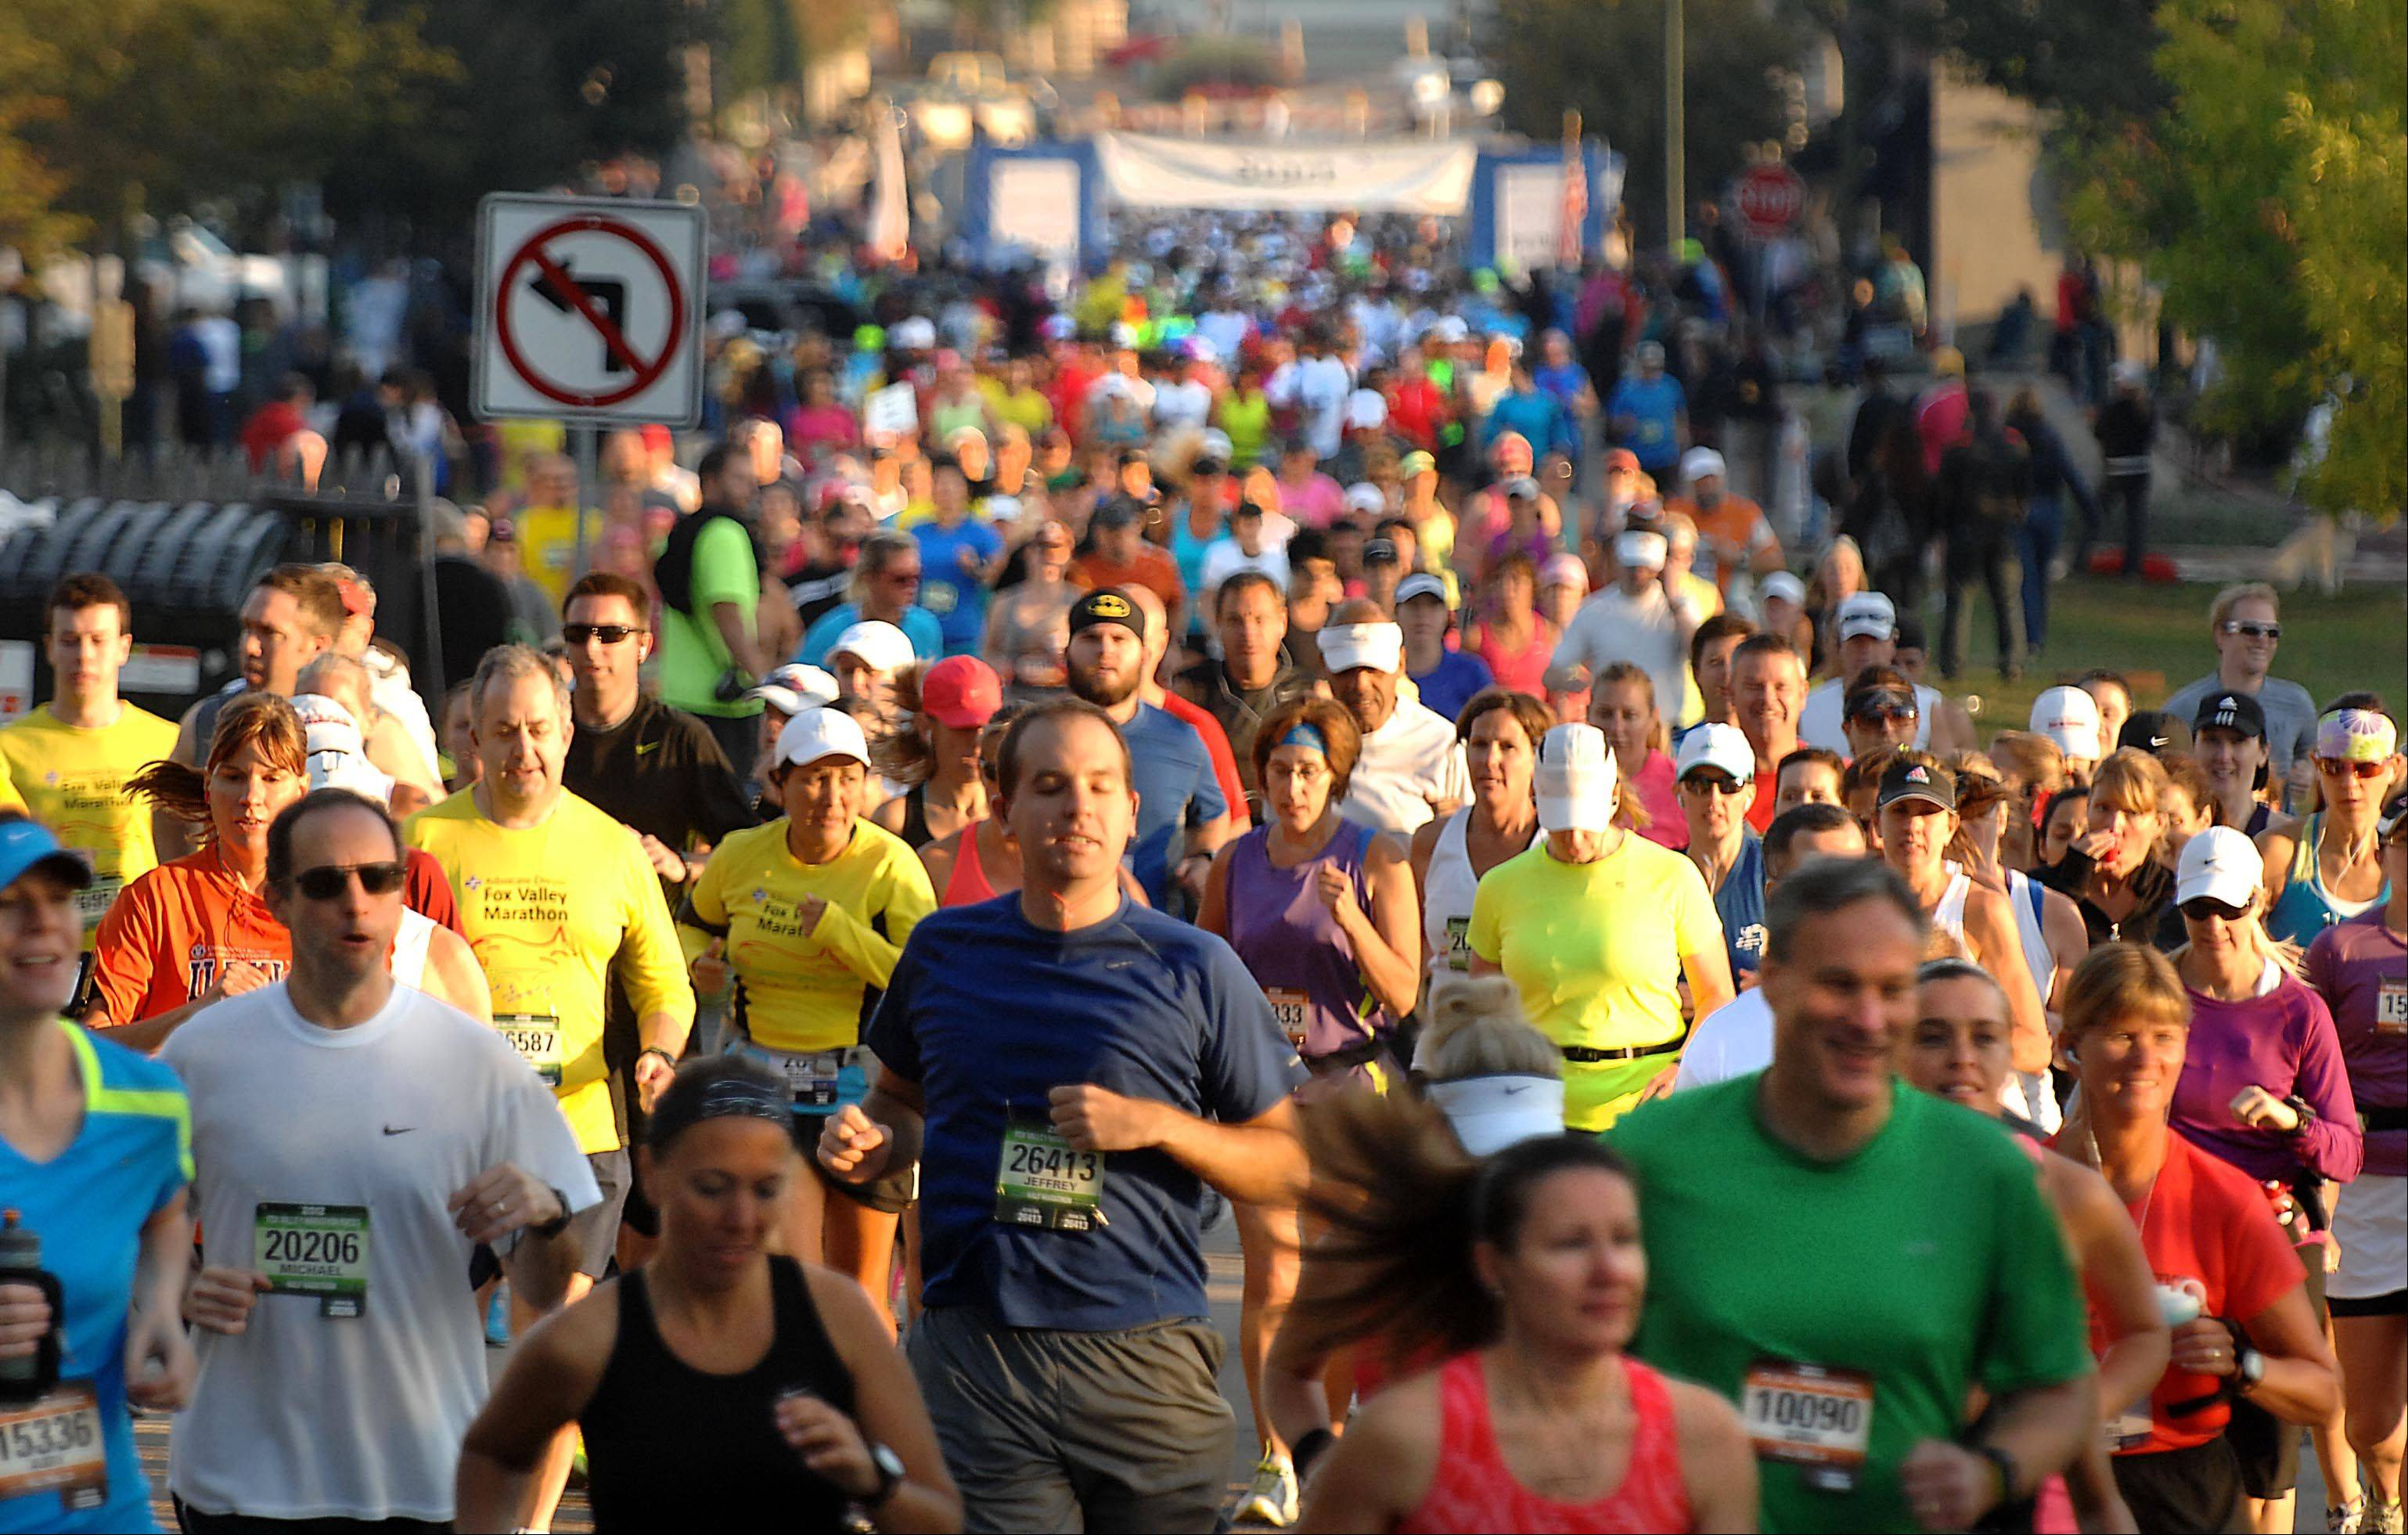 As many as 7,500 runners participated in last year's Fox Valley Marathon. Organizer Bob Hackett said Naperville's first marathon, to be held next November, will be capped at 4,000 runners.